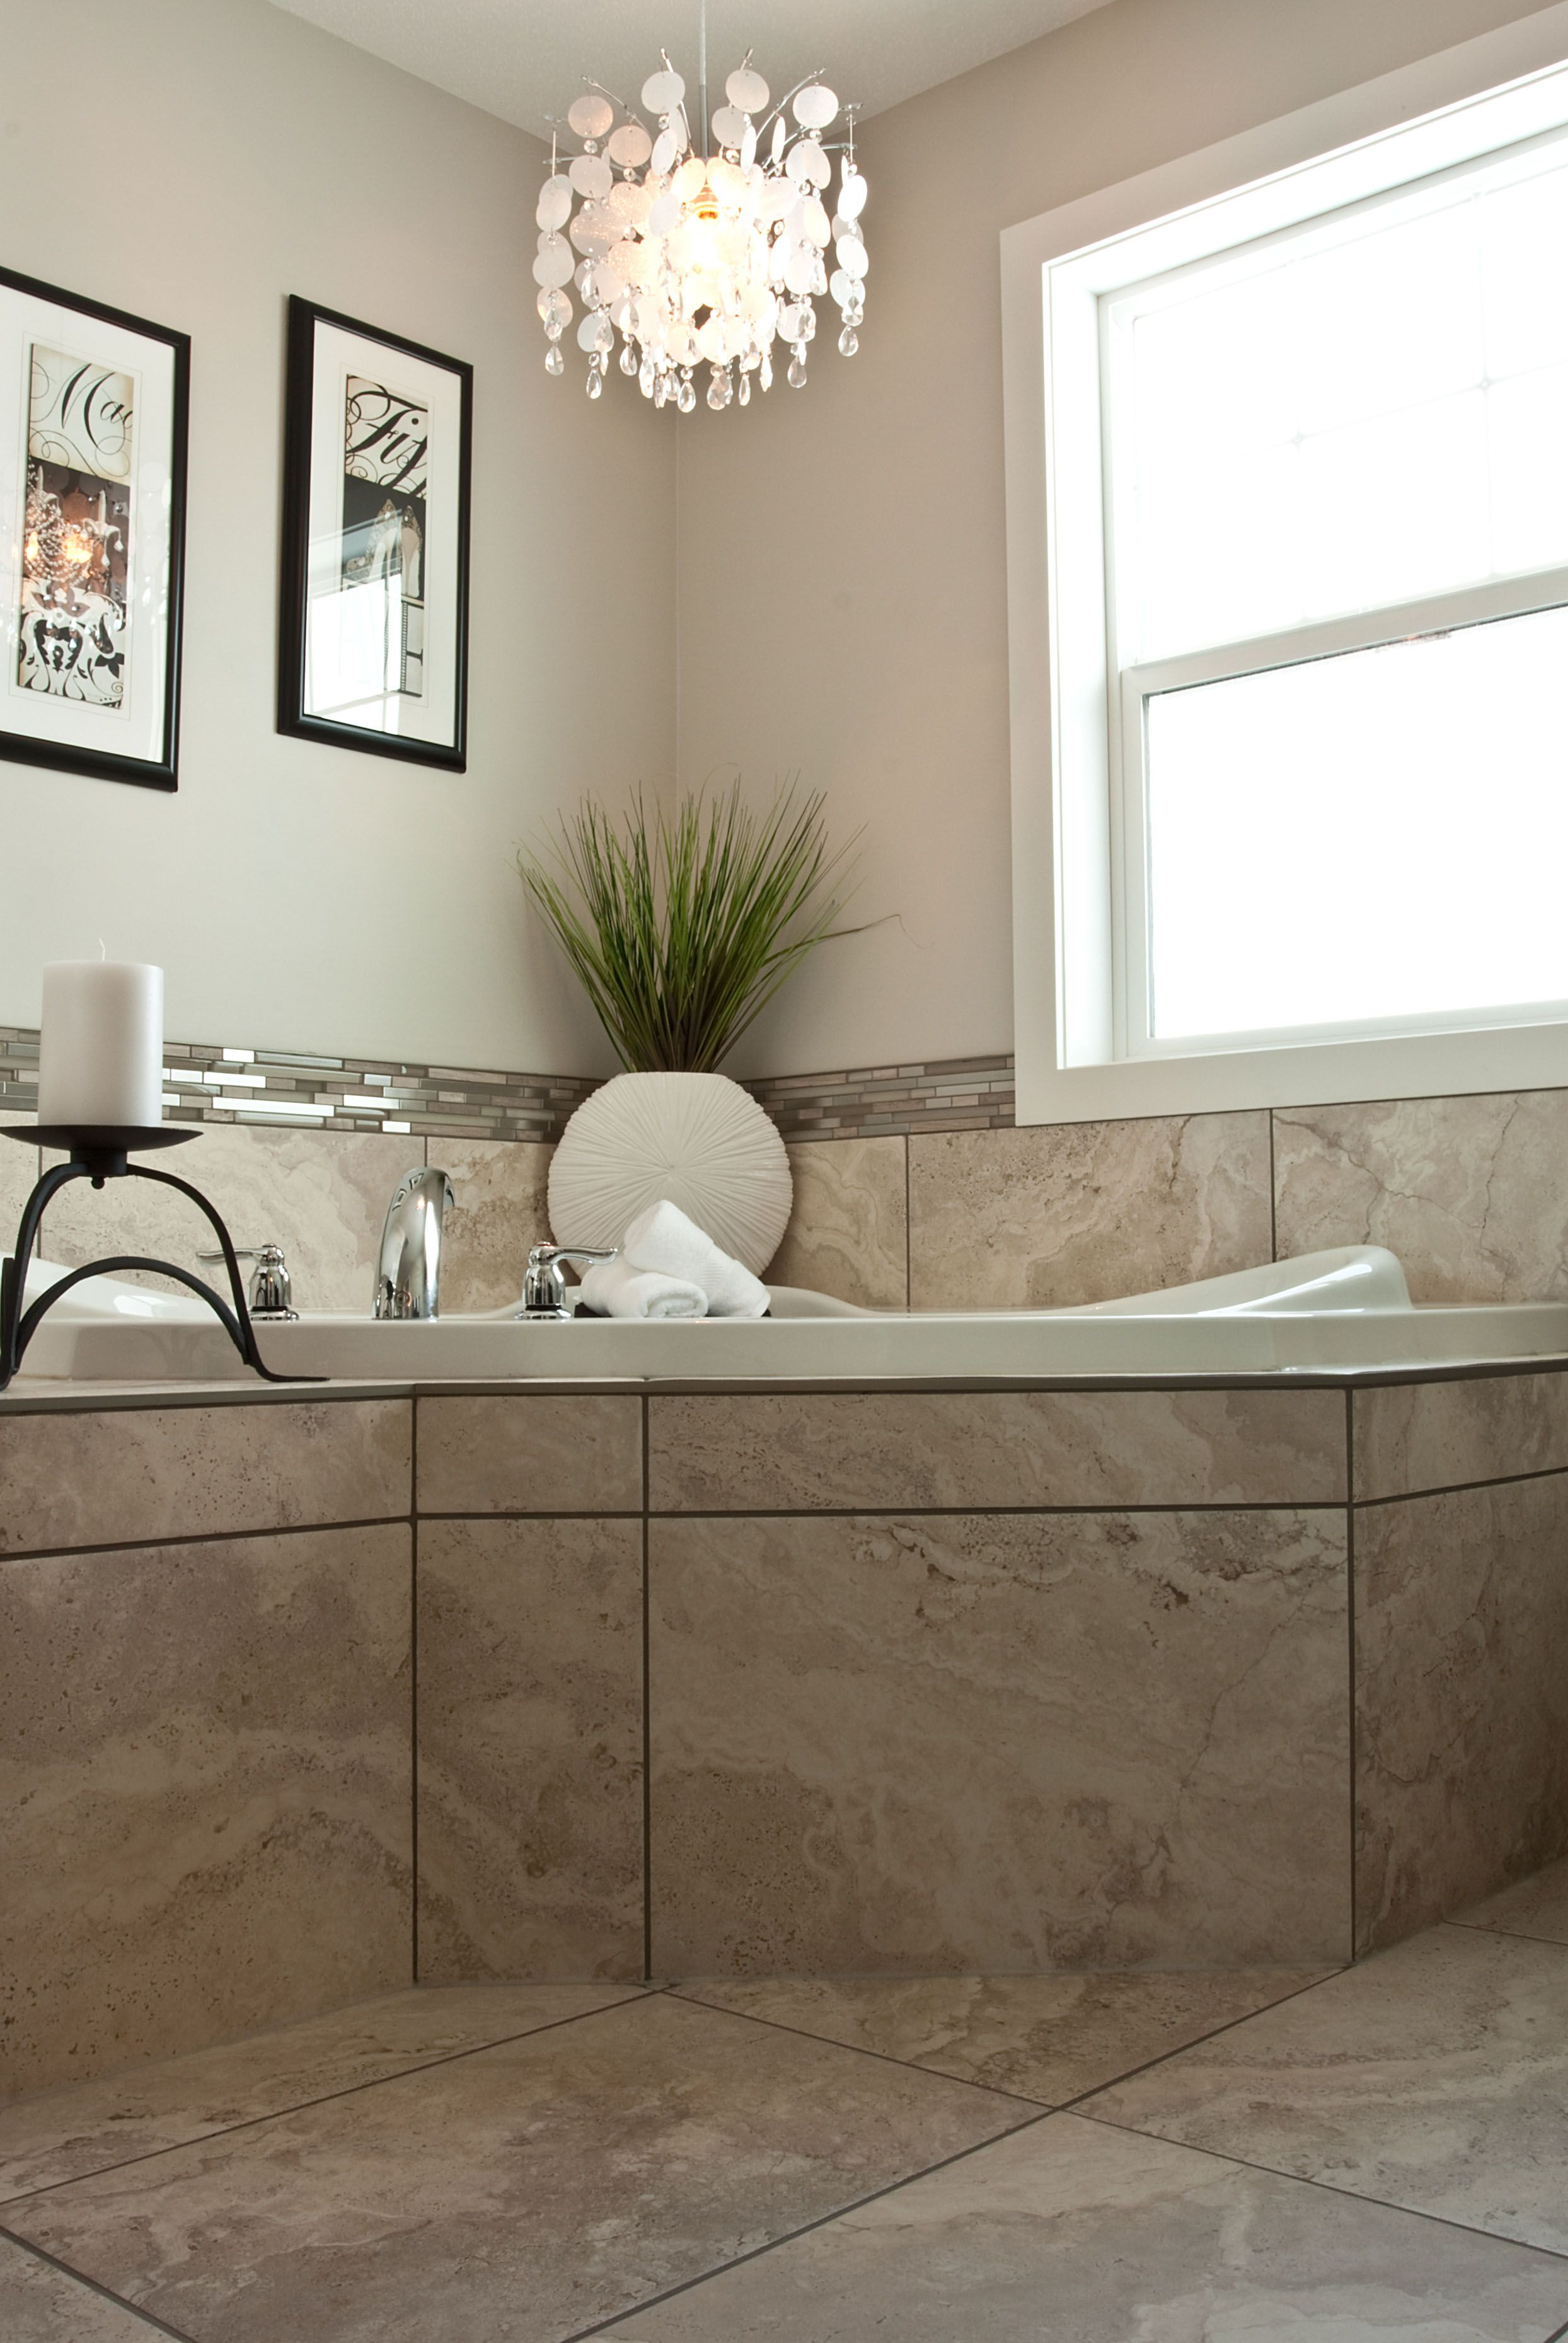 Large format tile surround a soaker tub in the bright and airy ...